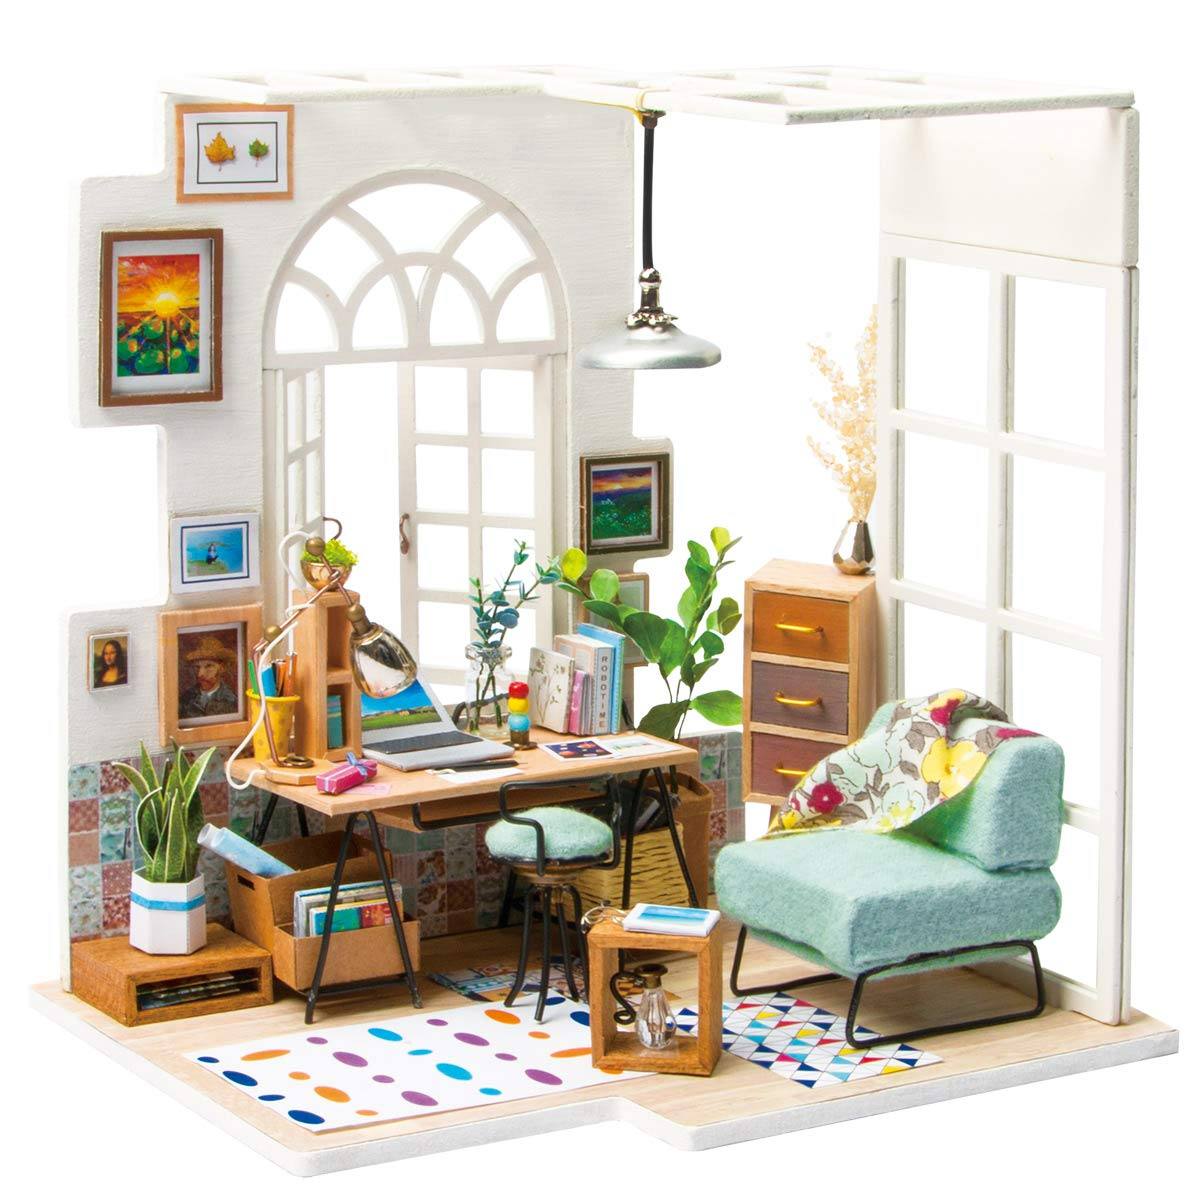 Rolife DIY Wooden Miniature Dollhouse Kit with Led Light-Mini House Woodcraft Construction Kit-3d Wooden Puzzle-Model Building Sets-Perfect Birthday for Boys and Girls (Office) by Rolife